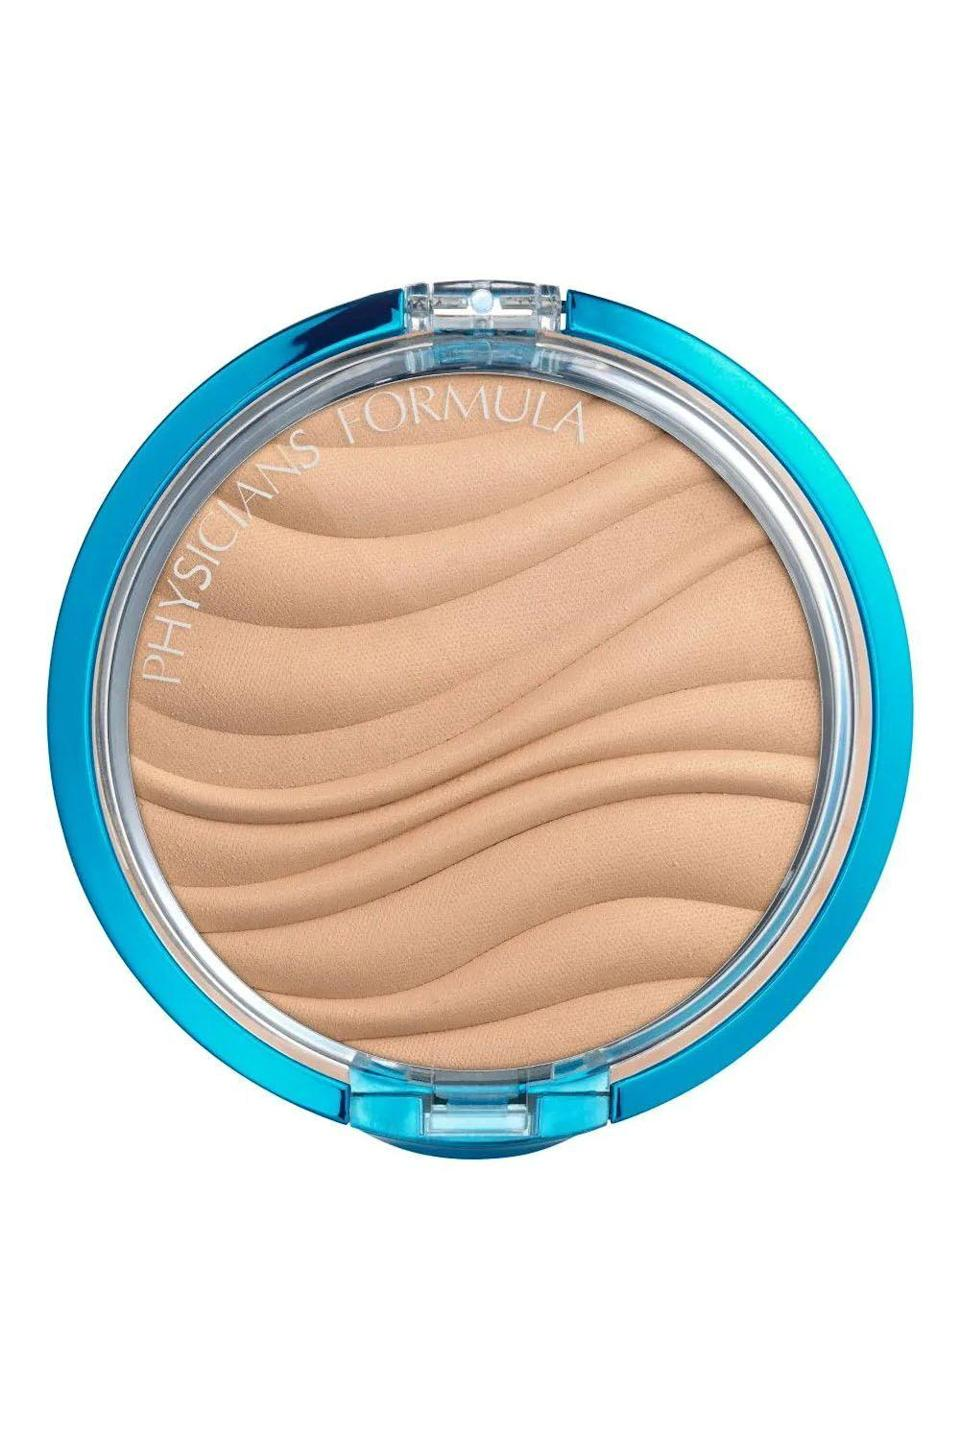 """<p><strong>Physicians Formula</strong></p><p>ulta.com</p><p><strong>$10.49</strong></p><p><a href=""""https://go.redirectingat.com?id=74968X1596630&url=https%3A%2F%2Fwww.ulta.com%2Fmineral-wear-talc-free-mineral-airbrushing-pressed-powder-spf-30%3FproductId%3DxlsImpprod4090139&sref=https%3A%2F%2Fwww.cosmopolitan.com%2Fstyle-beauty%2Fbeauty%2Fg32729898%2Fbest-drugstore-setting-powder%2F"""" rel=""""nofollow noopener"""" target=""""_blank"""" data-ylk=""""slk:Shop Now"""" class=""""link rapid-noclick-resp"""">Shop Now</a></p><p>Even though wearing makeup with SPF isn't enough for protection—you should be layering on <a href=""""https://www.cosmopolitan.com/style-beauty/beauty/advice/g3973/best-new-sunscreens/"""" rel=""""nofollow noopener"""" target=""""_blank"""" data-ylk=""""slk:sunscreen"""" class=""""link rapid-noclick-resp"""">sunscreen</a> underneath your makeup, too—it's great to have on hand for touch-ups throughout the day. This drugstore setting powder has SPF 30, <strong>providing a little extra protection during the day,</strong> while also keeping your concealer from coming off your face.<br></p>"""